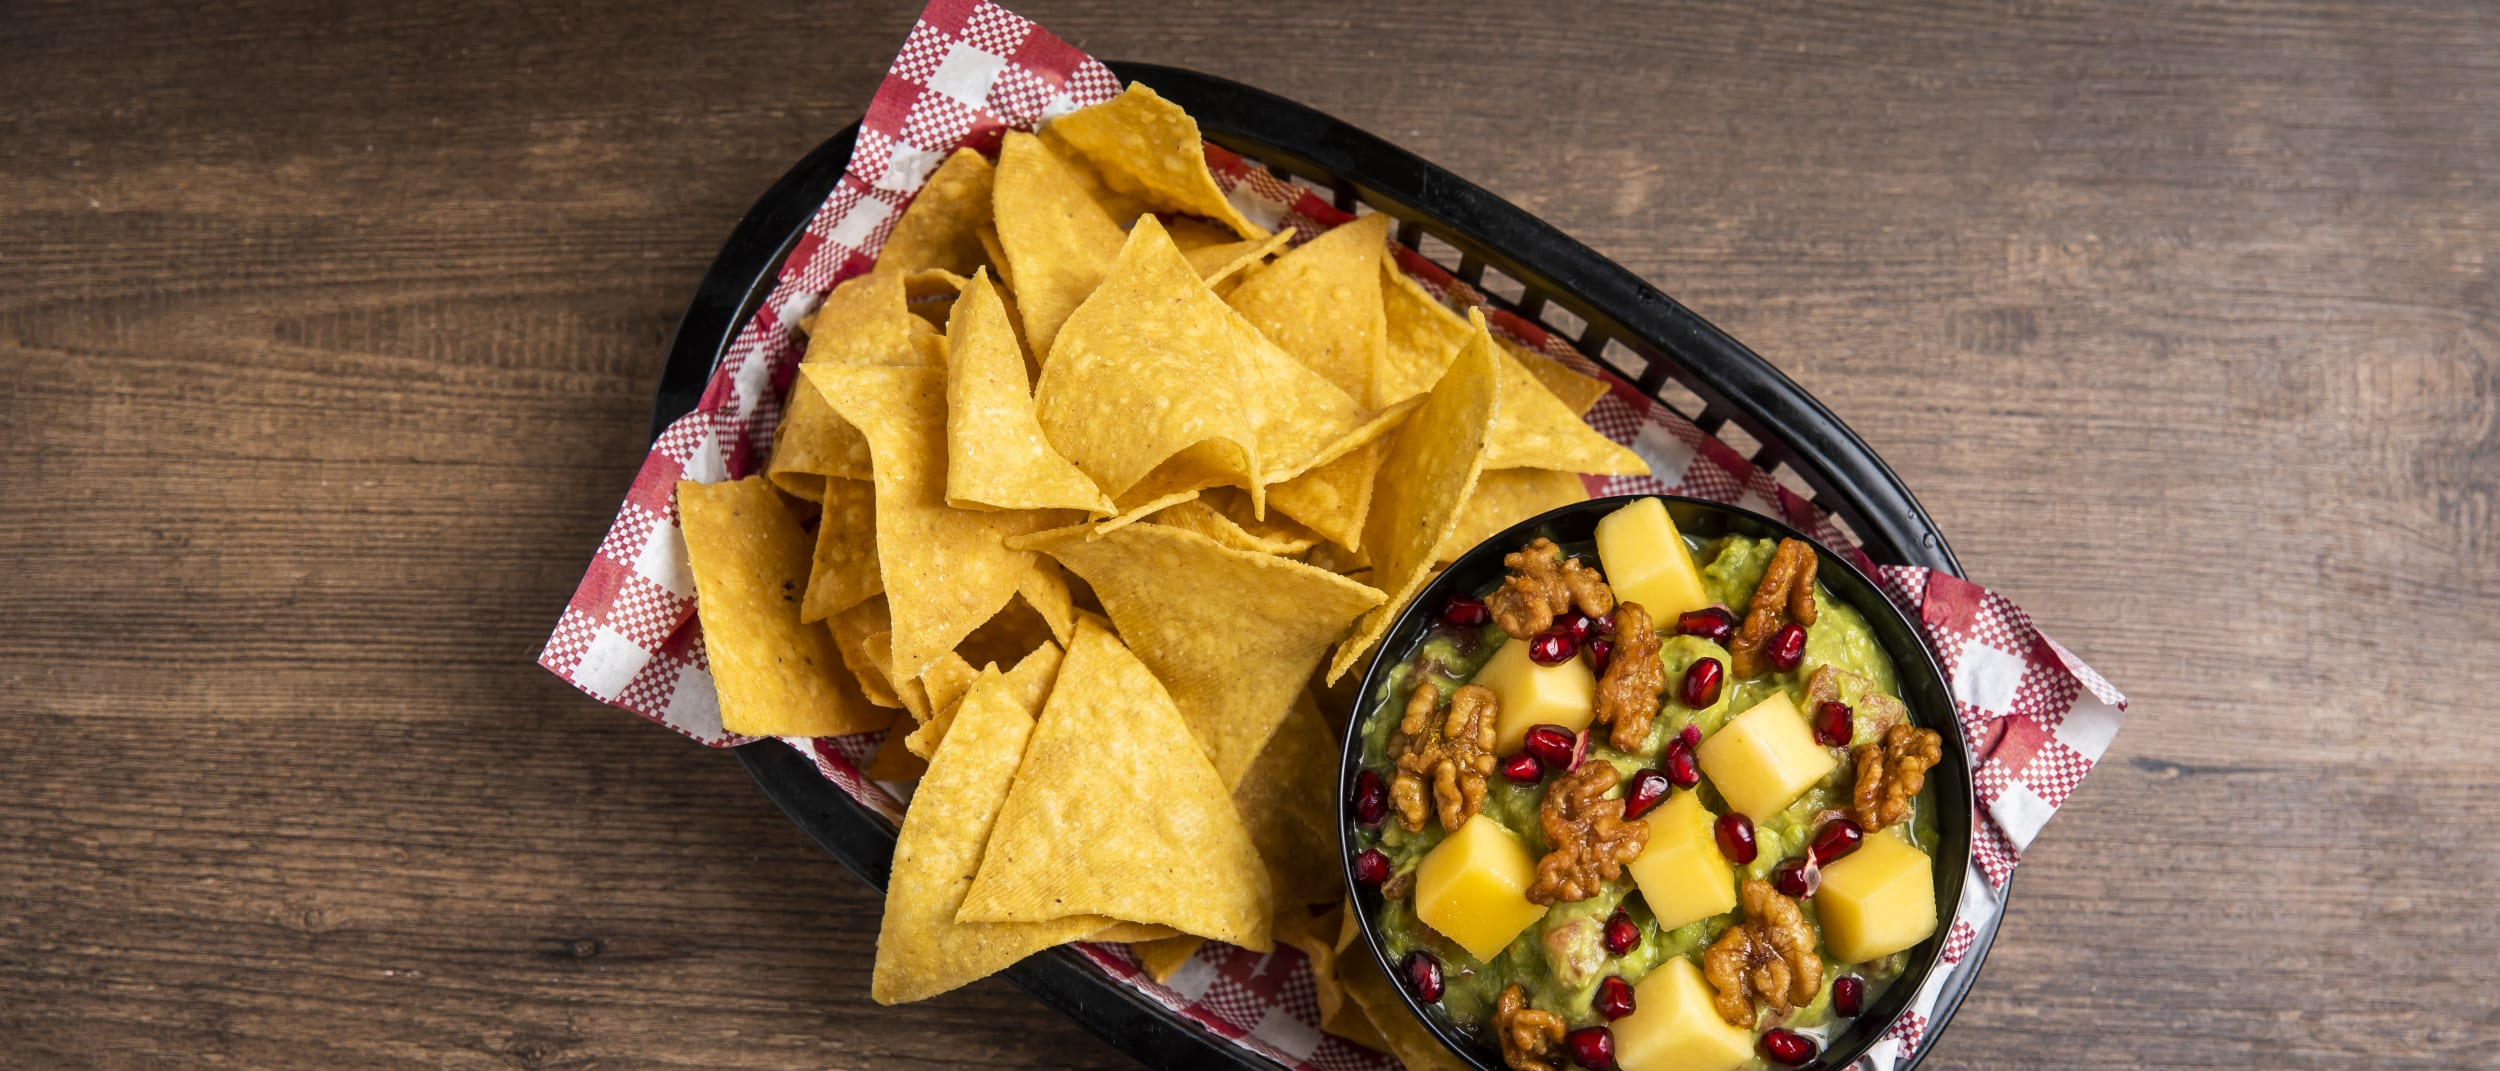 Whats on this month at El Camino Cantina